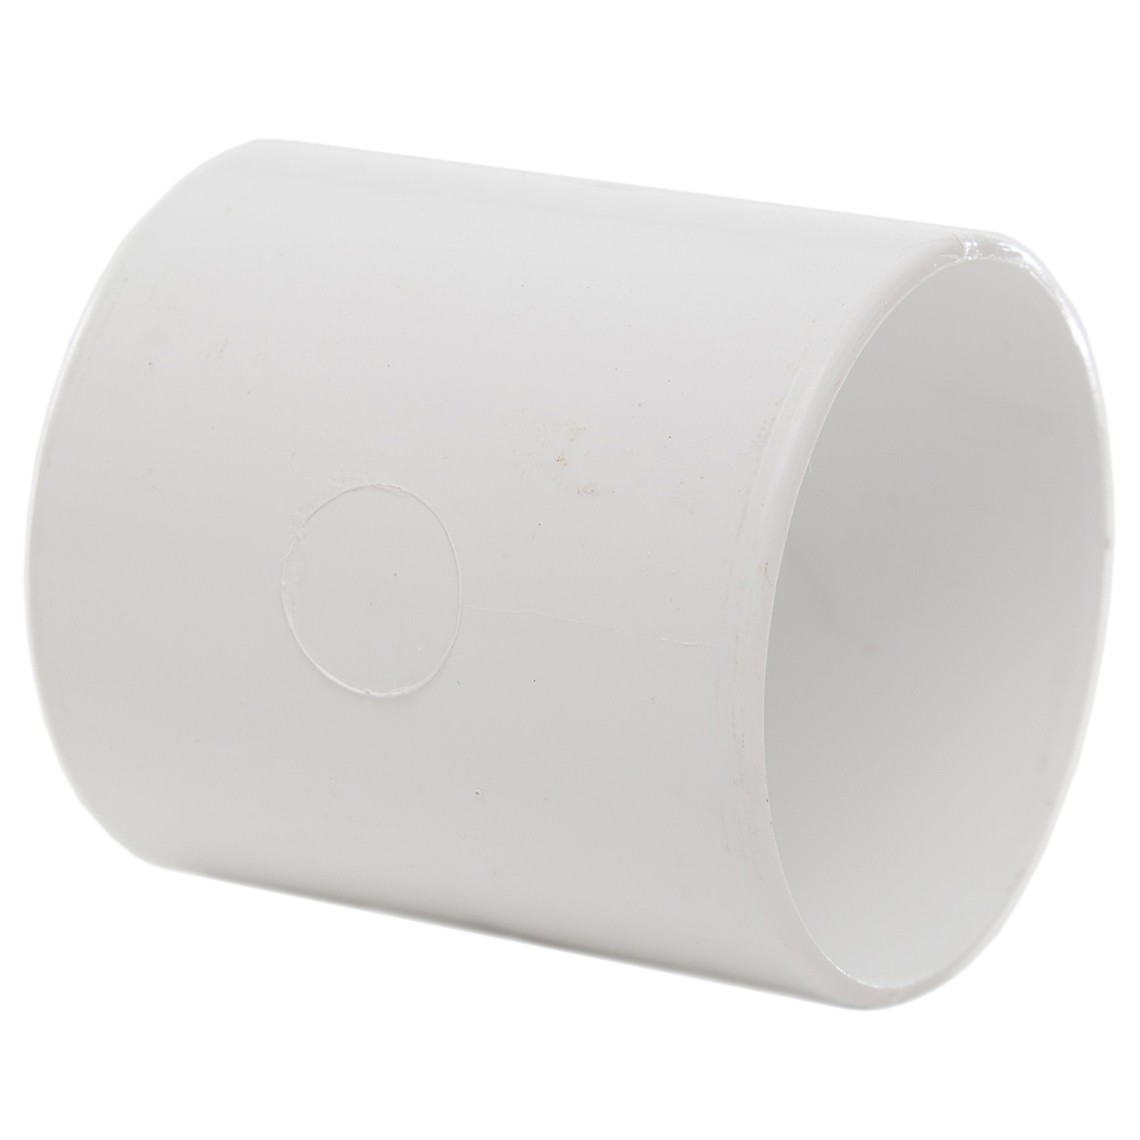 Polypipe 50mm Solvent Weld Waste Straight Coupler - White